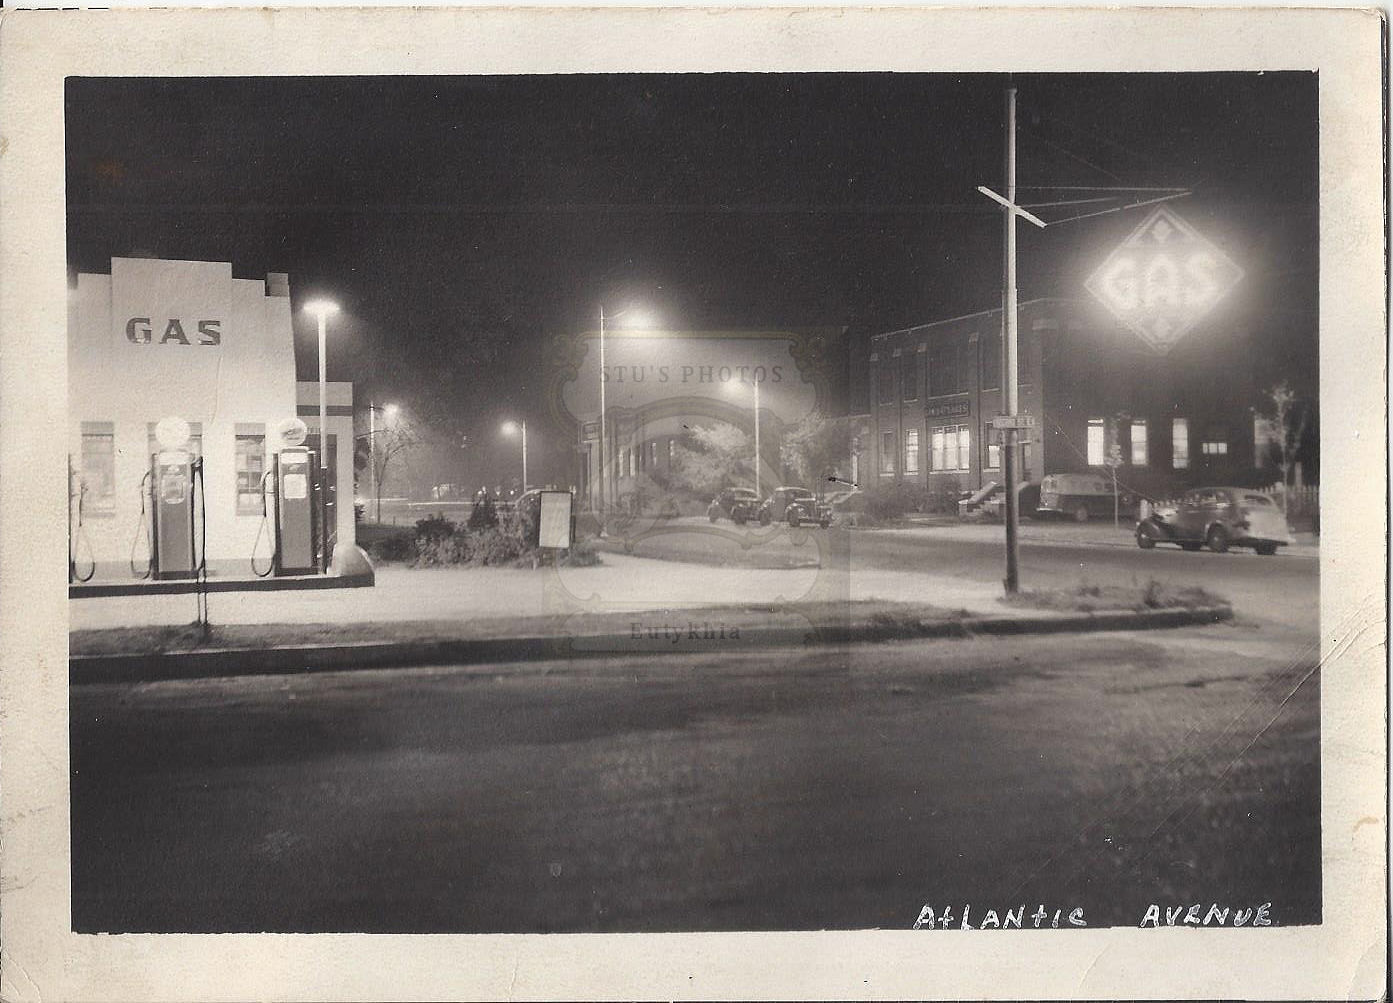 Thief                                                           River Falls,                                                           MN Vintage                                                           1940's Service                                                           Gas Station                                                           & Tank                                                           Truck CO-OP                                                           Assoc. Three                                                           photographs